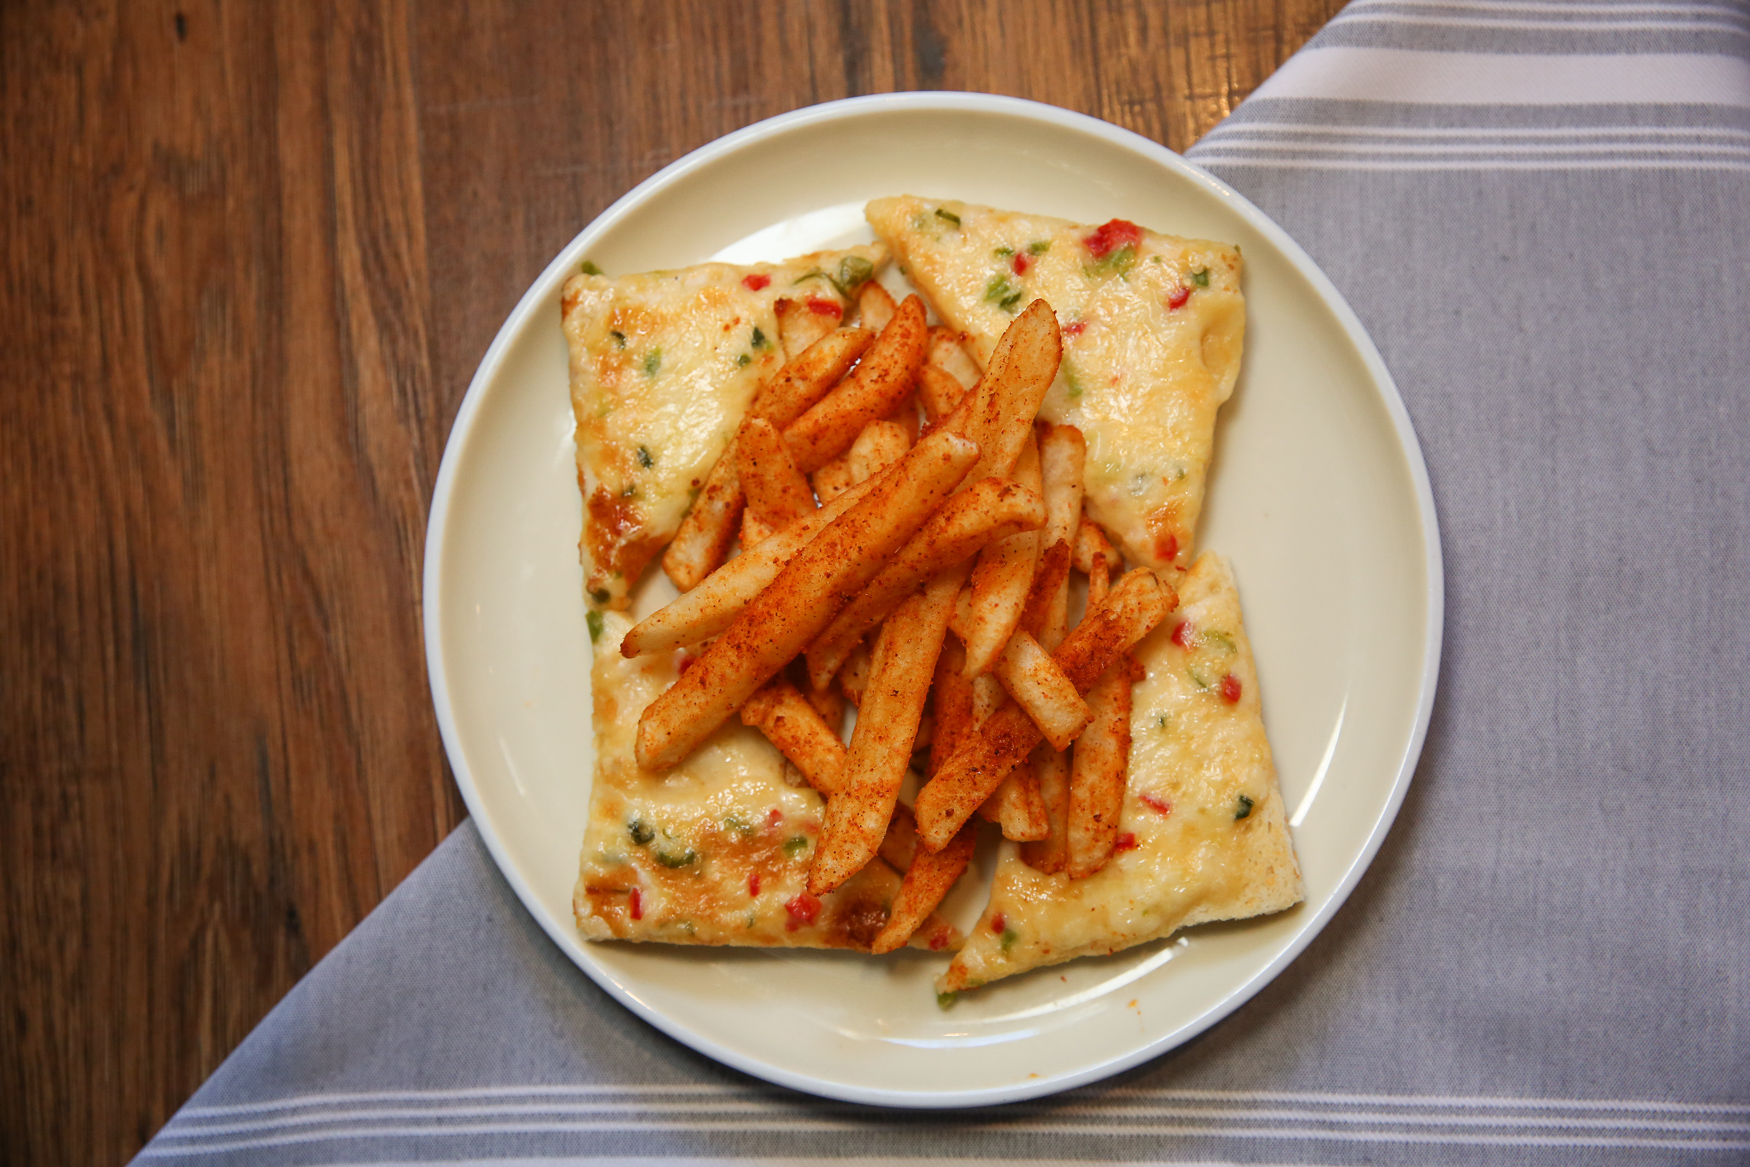 Chili cheese toast with gunpowder fries{ }(Image: Amanda Andrade-Rhoades/ DC Refined)